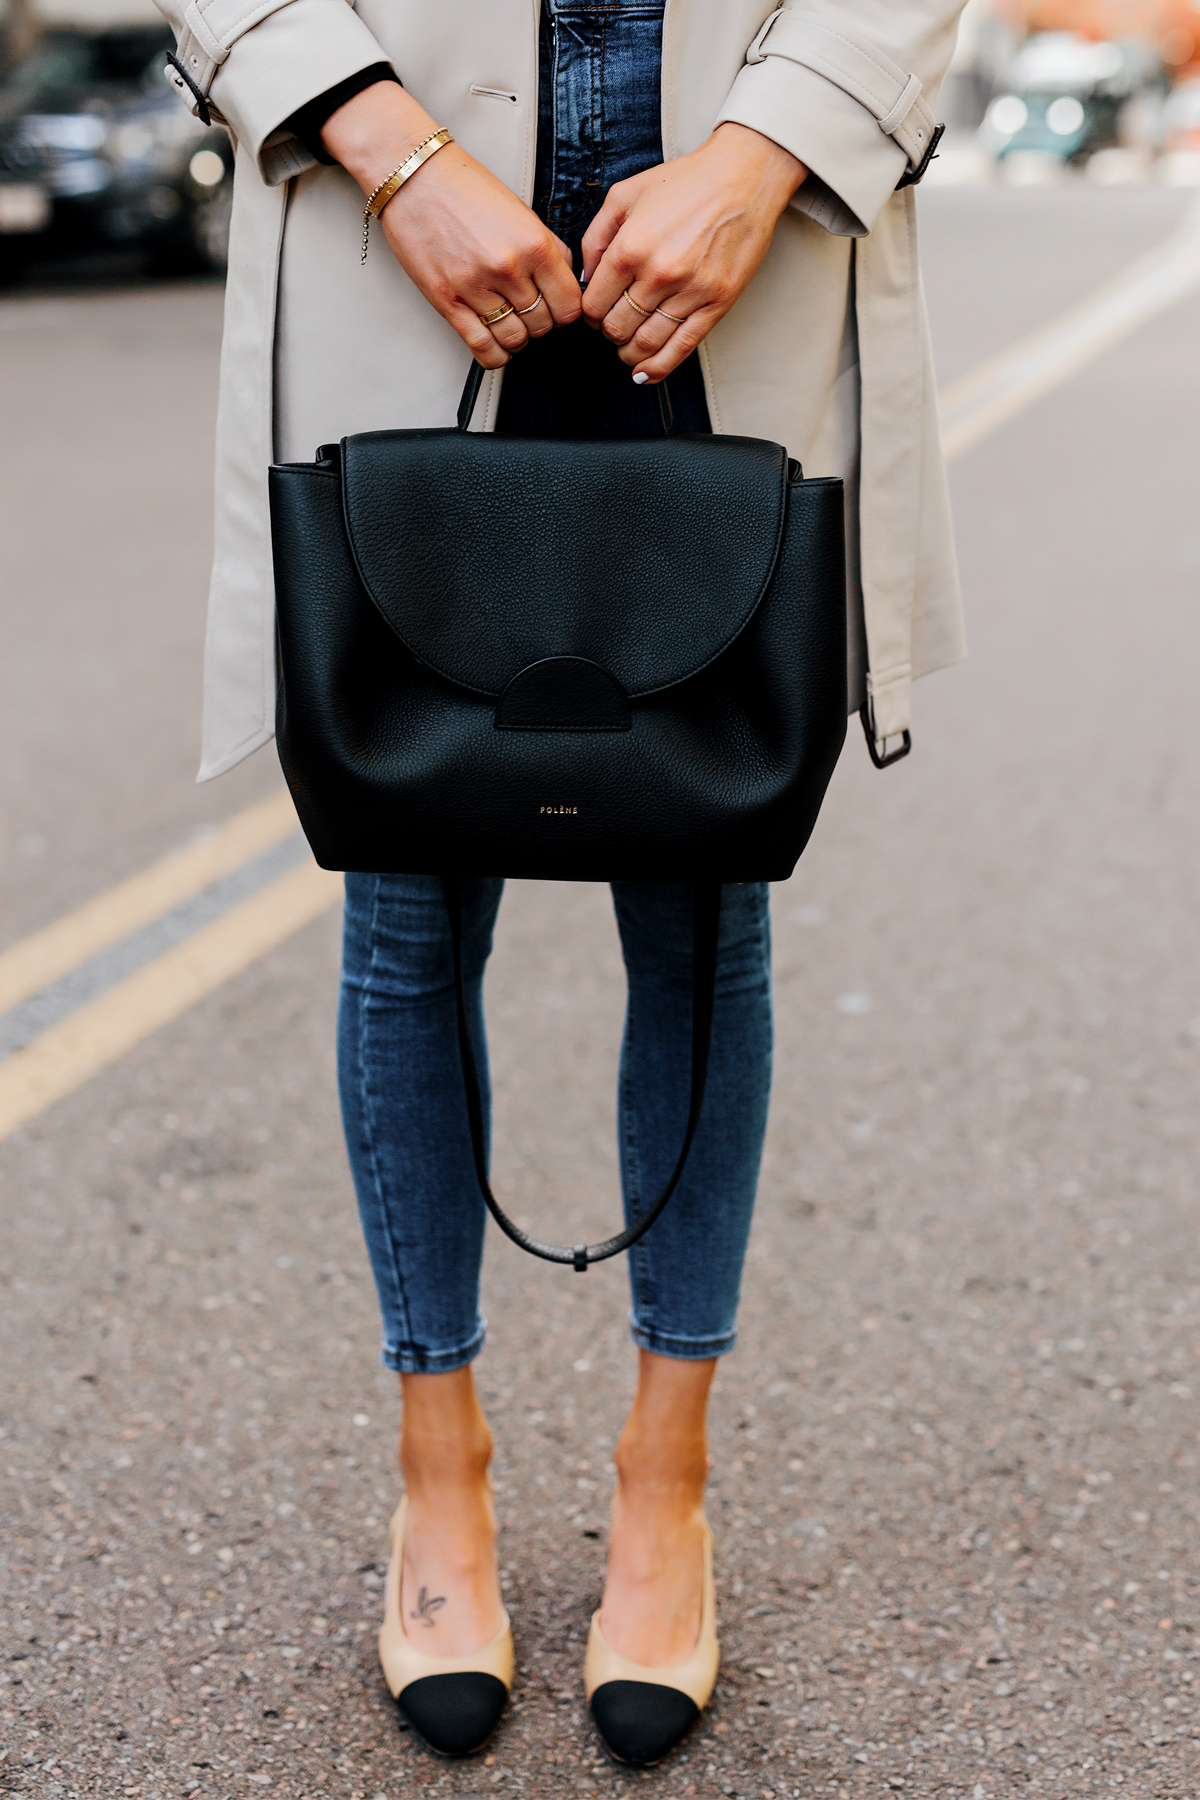 Woman Holding Polene Number One Handbag Monochrome Black Fashion Jackson San Diego Fashion Blogger Street Style